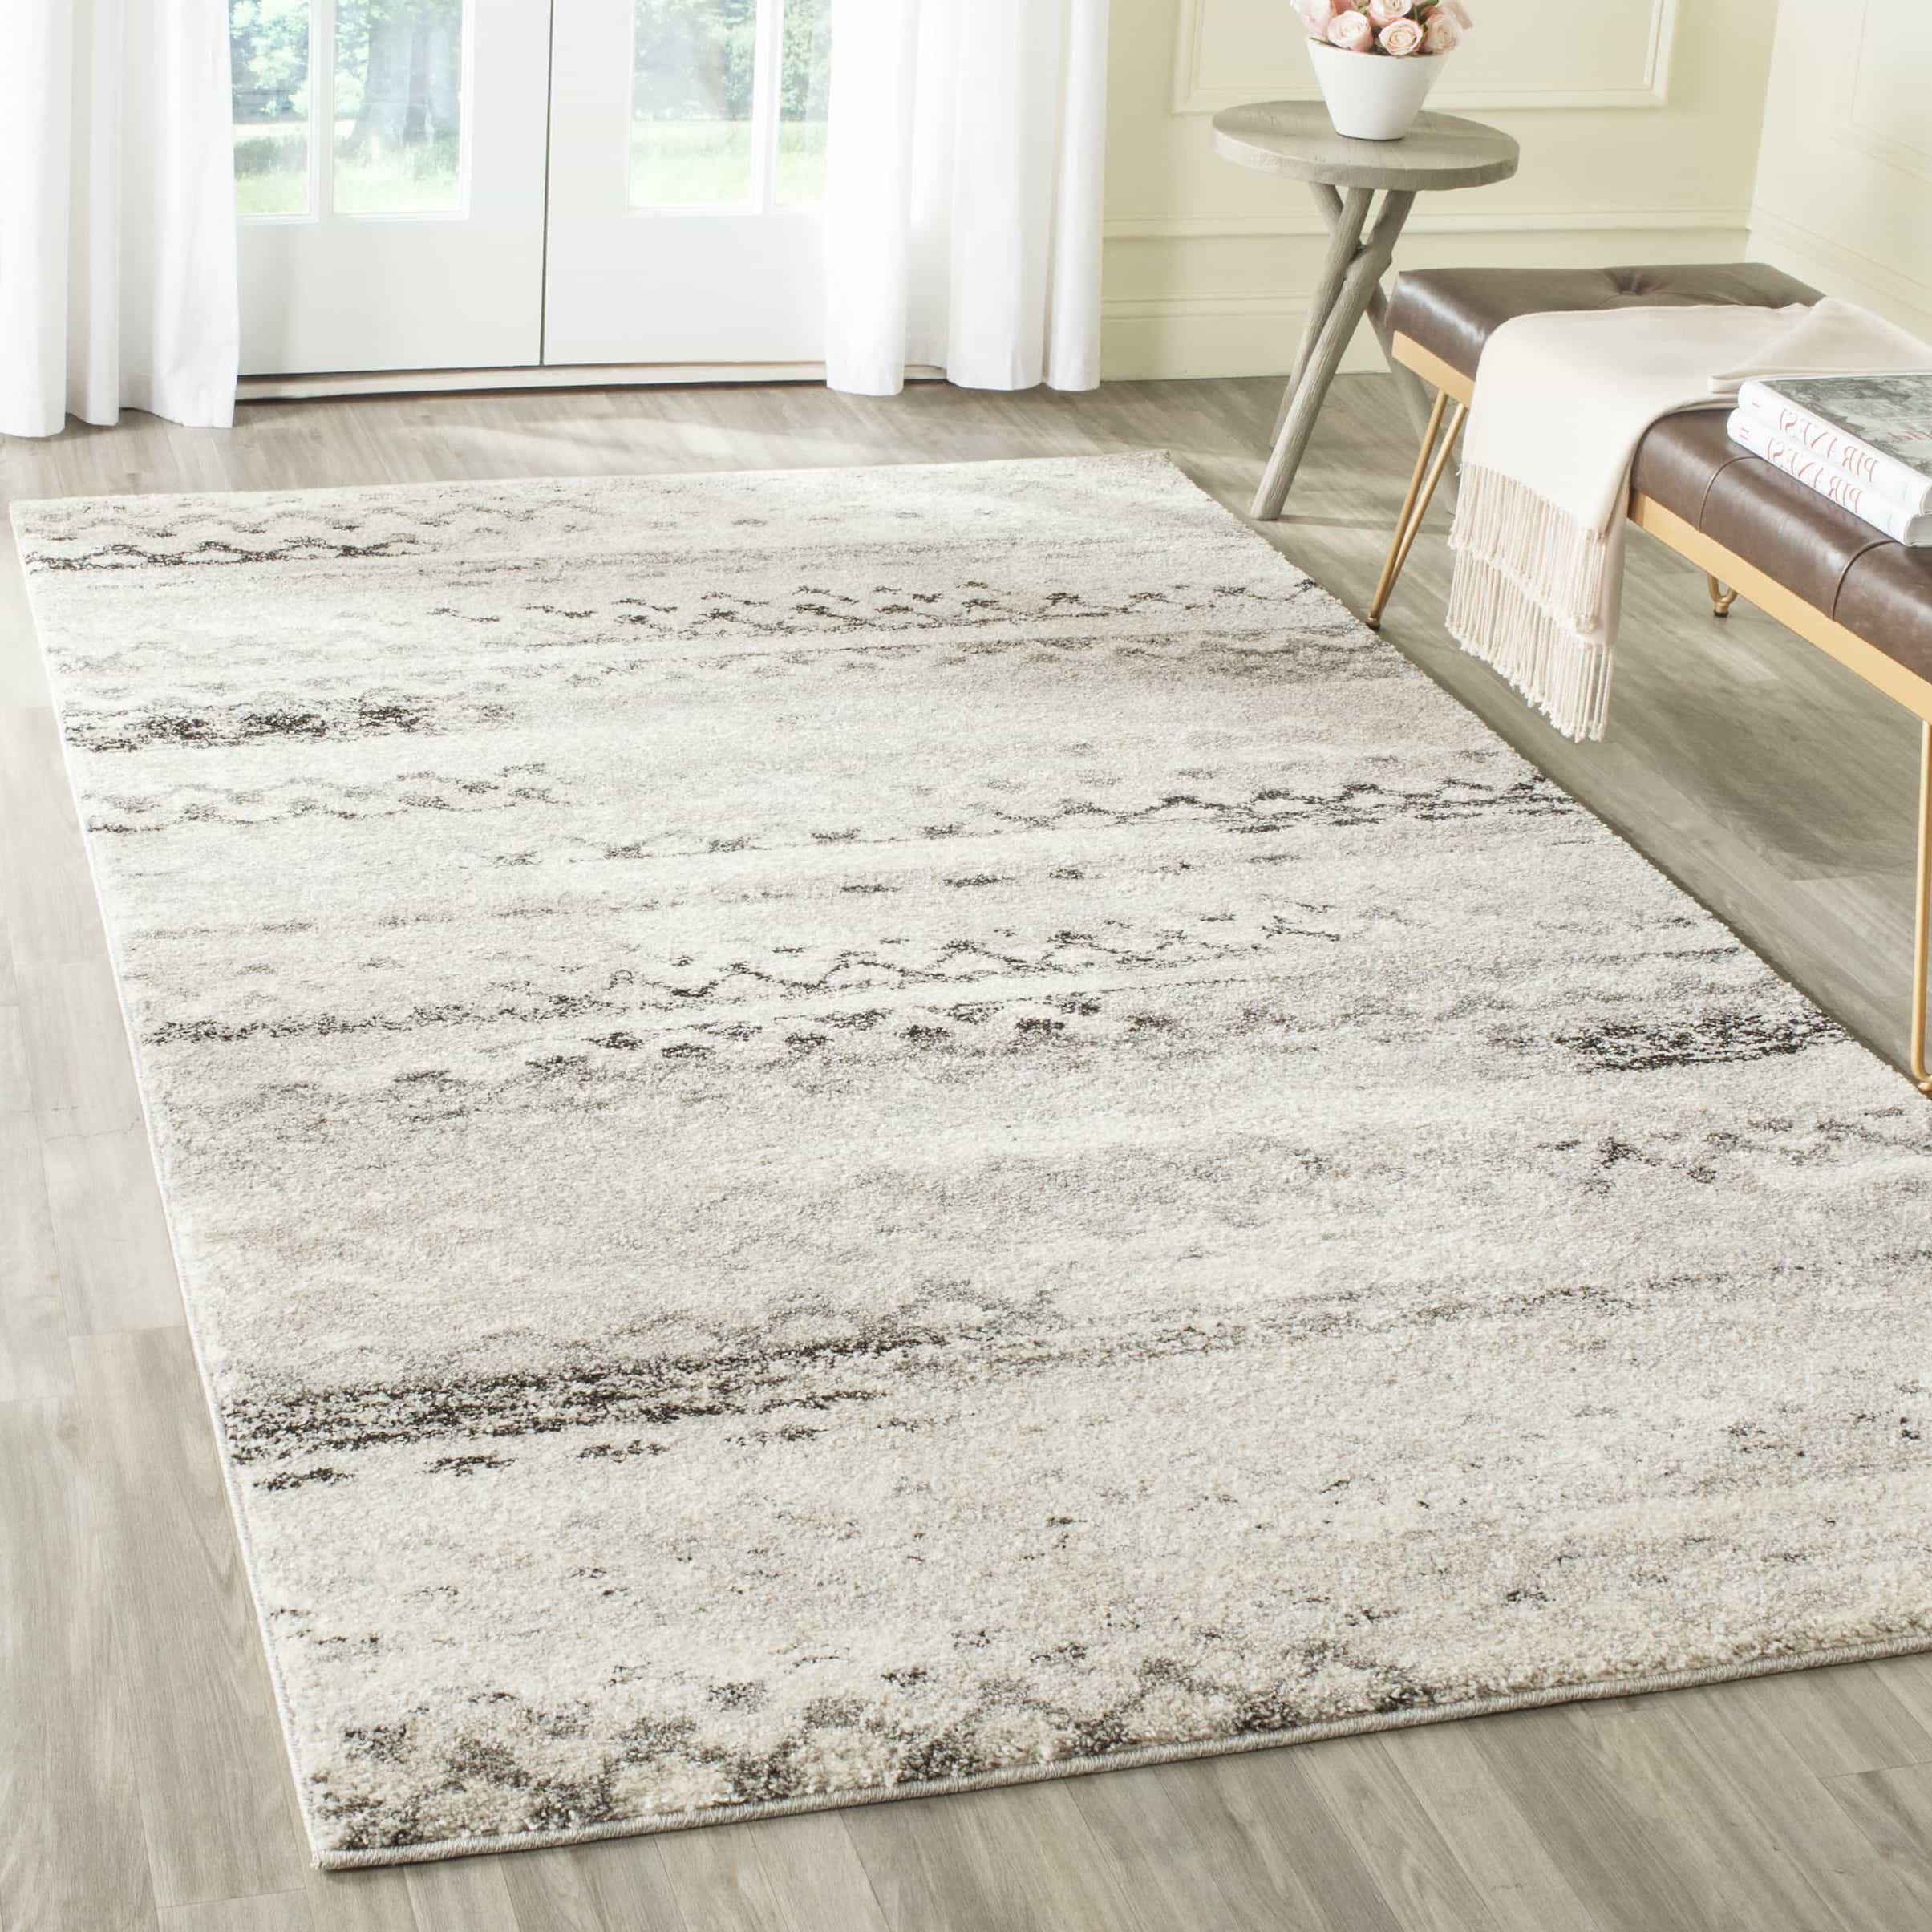 Flokati Rug For Orange And Taupe Living Room (Image 4 of 10)